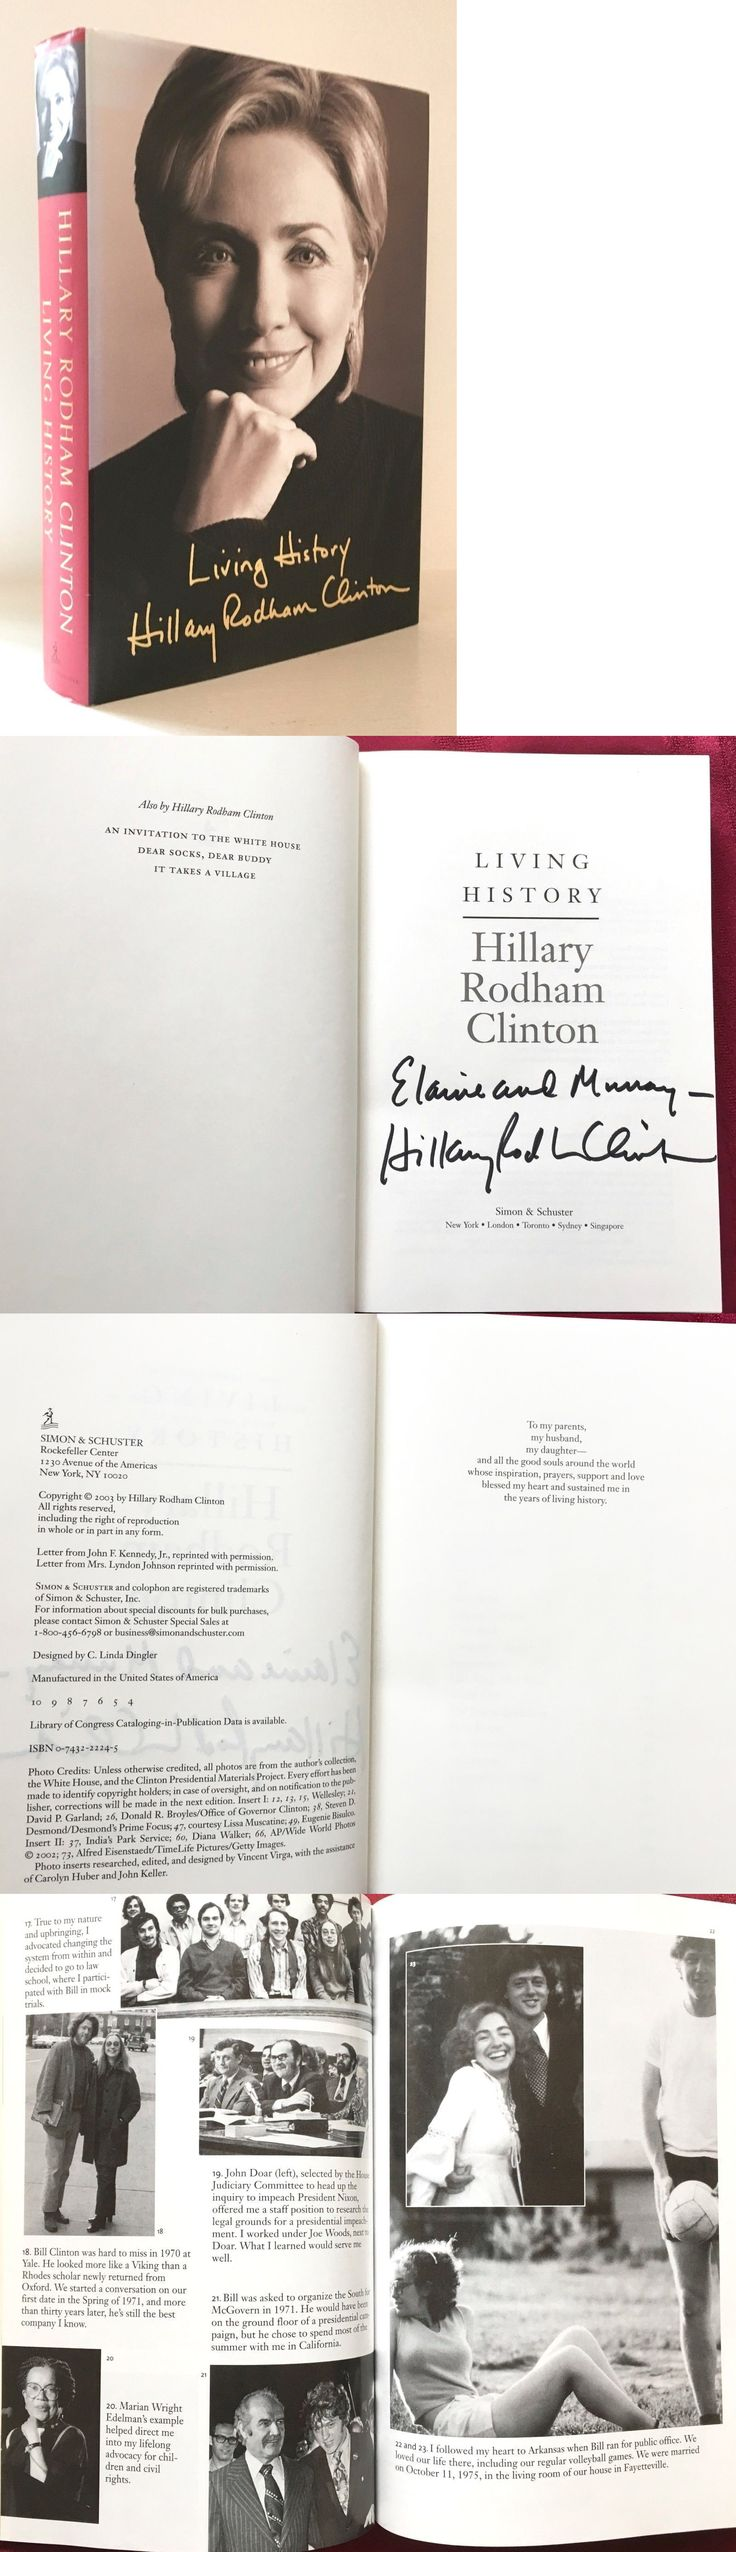 Hillary Clinton: Hillary Clinton Signed Book Living History. Excellent. -> BUY IT NOW ONLY: $19.95 on eBay!